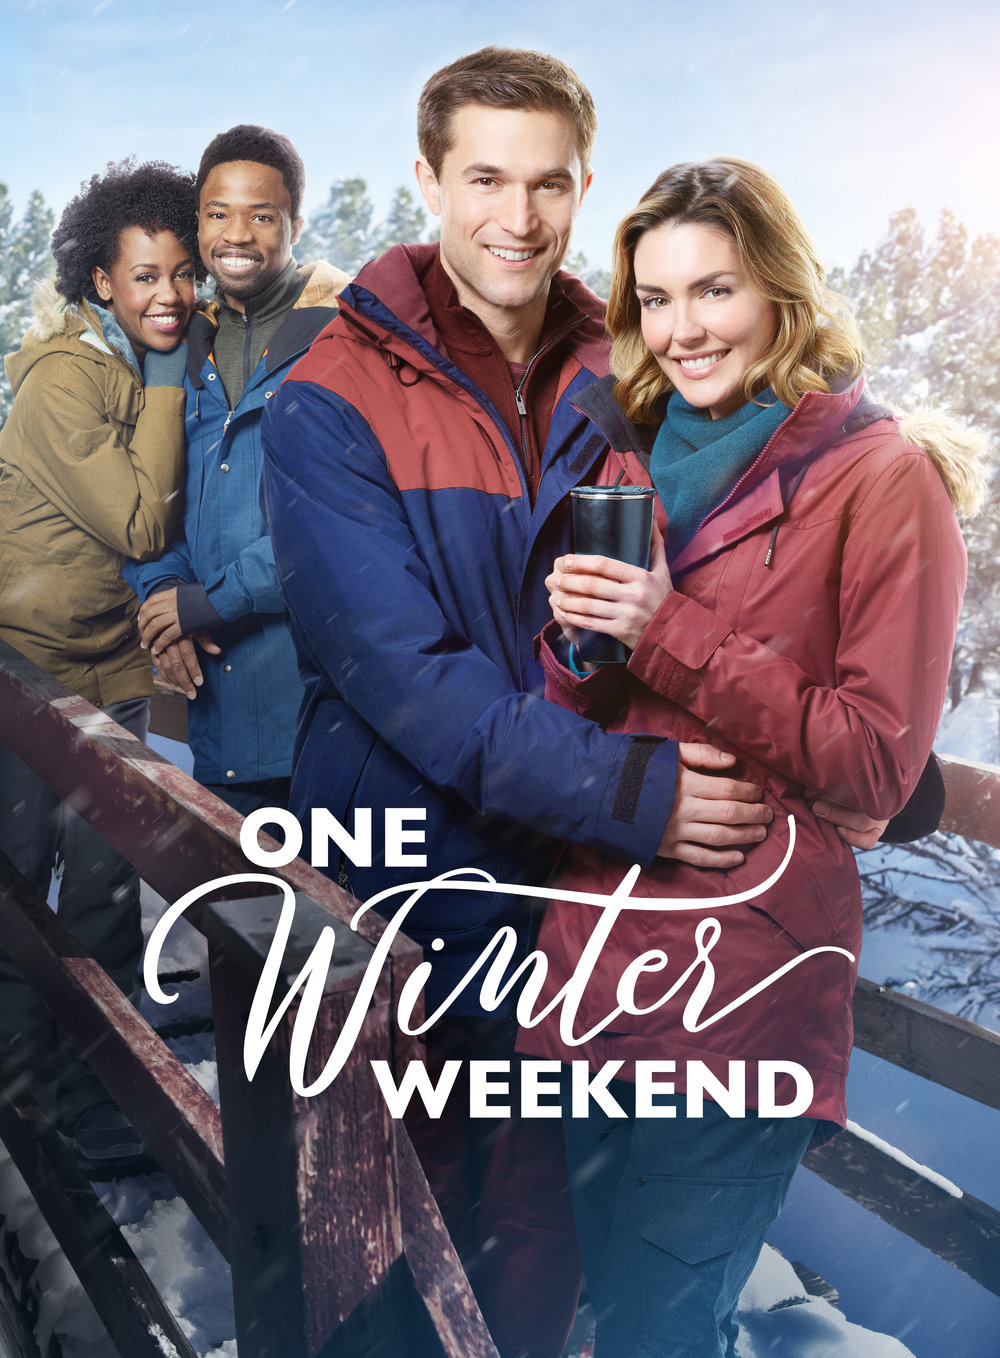 ONE WINTER'S WEEKEND